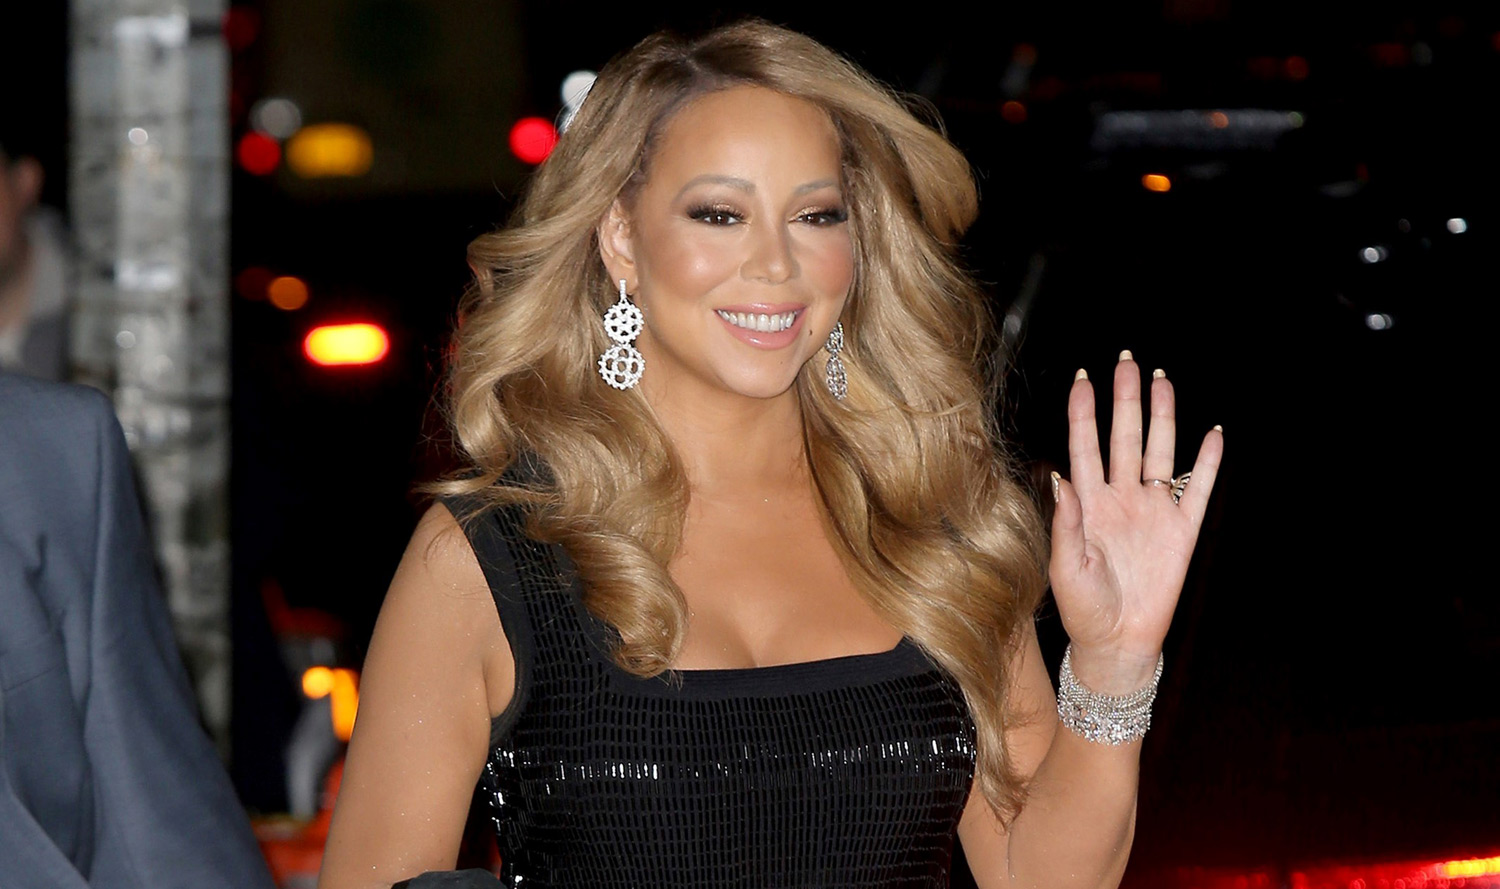 Mariah Carey Just Wrote a Brand New Christmas Song ... Mariah Carey Songs